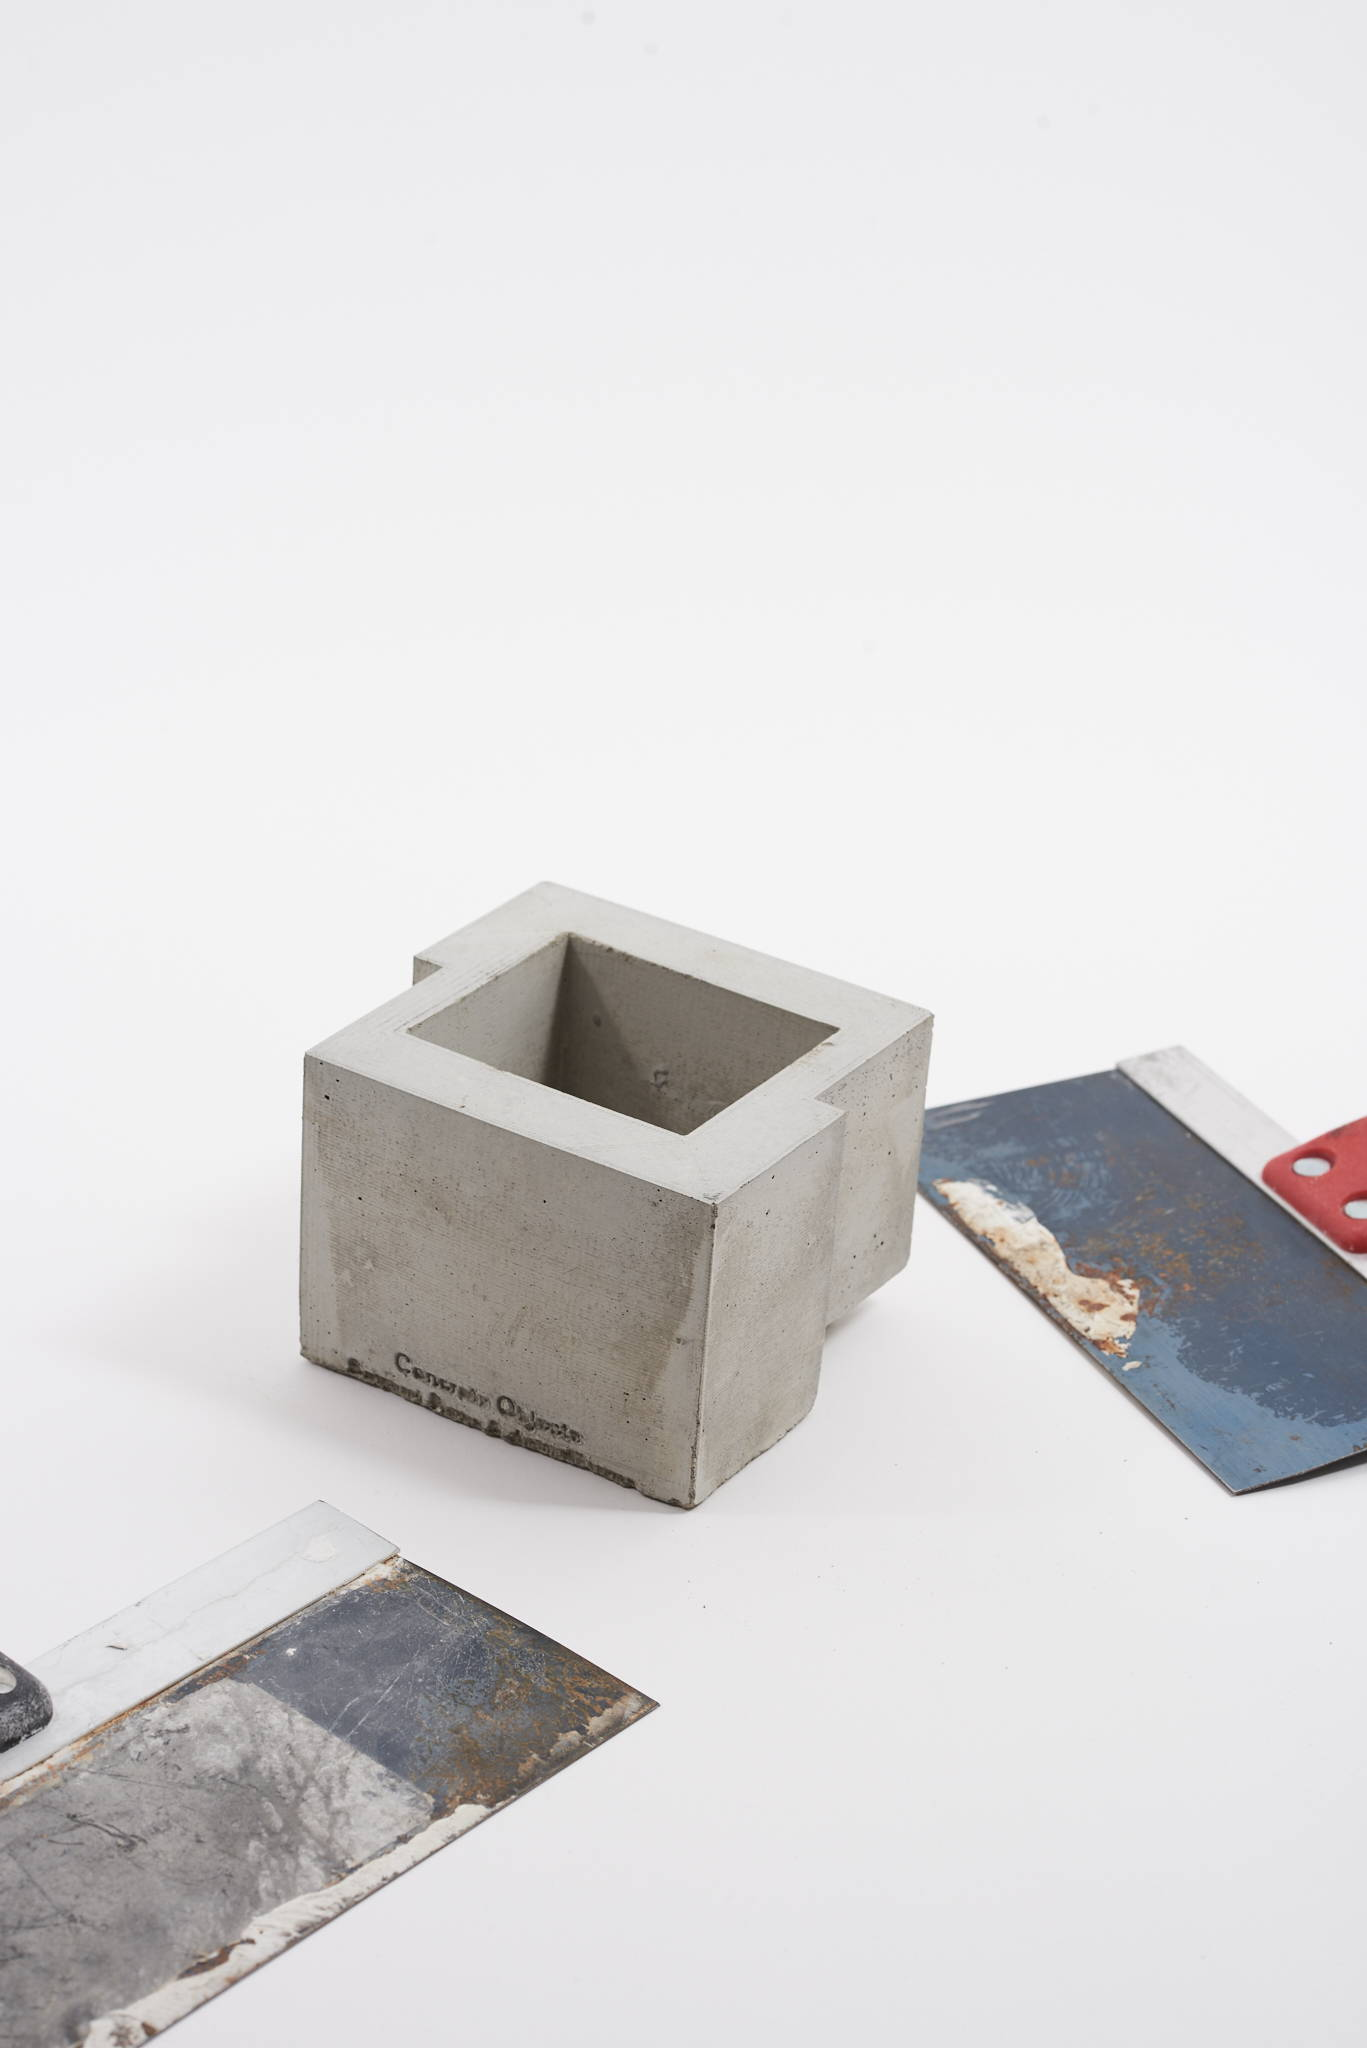 h lorenzo - concrete objects display cup homeware ss18 acw*